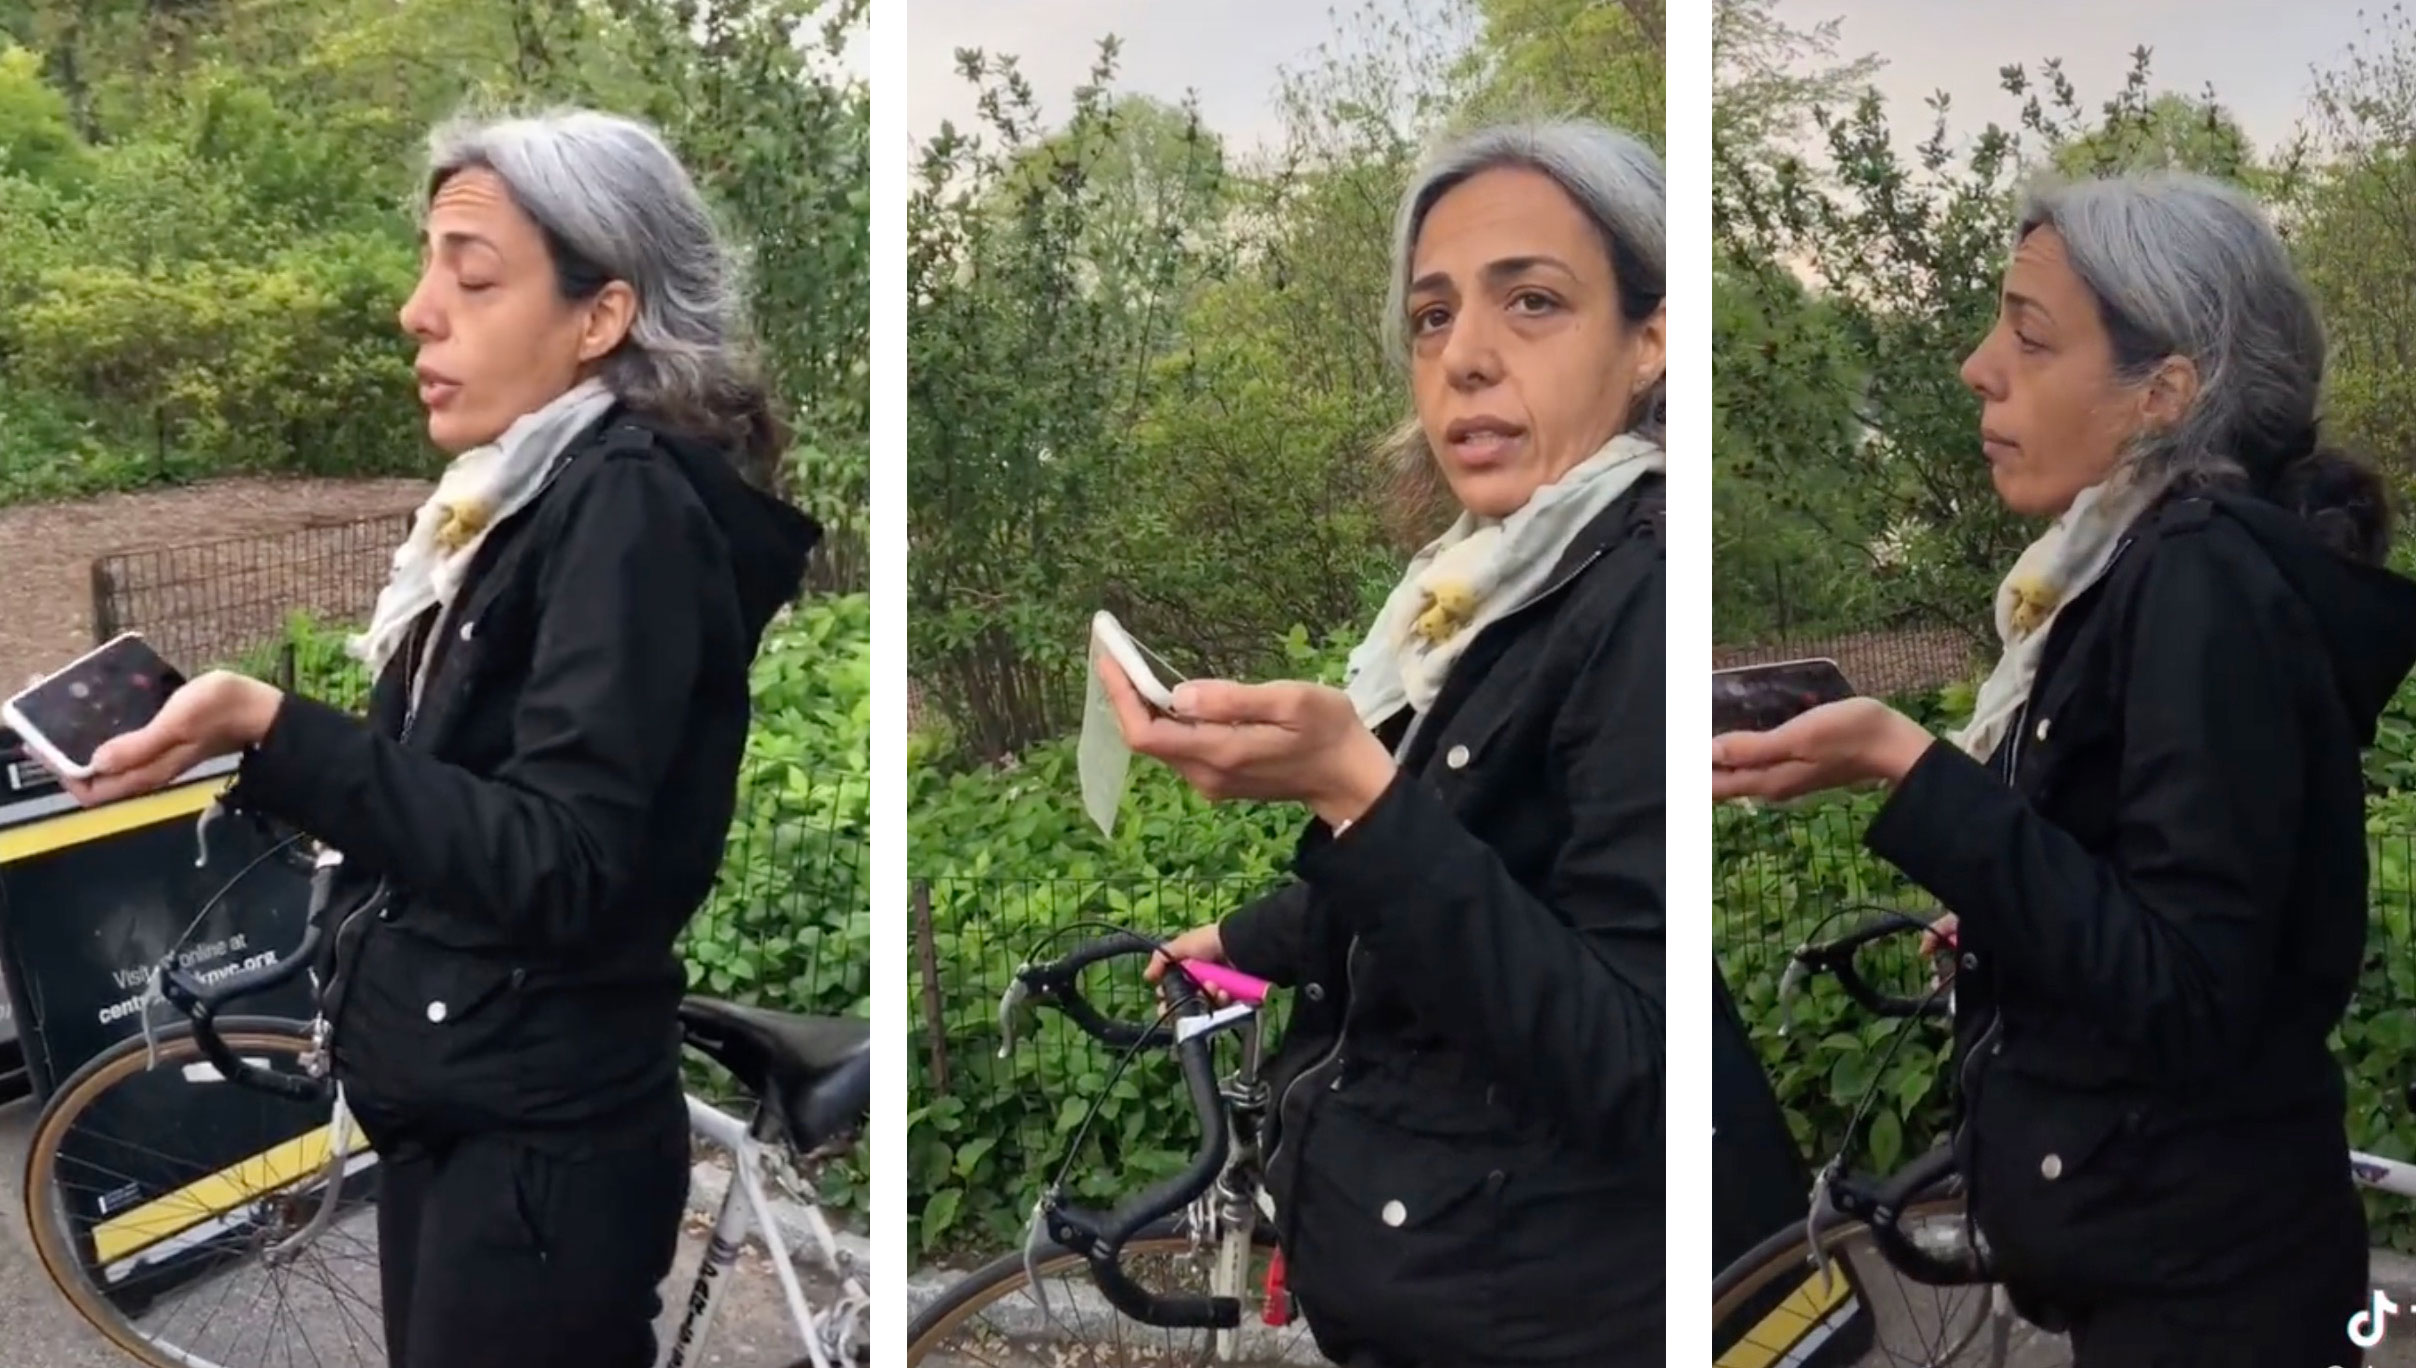 Watch this Central Park Karen lie about being assaulted by two Black women